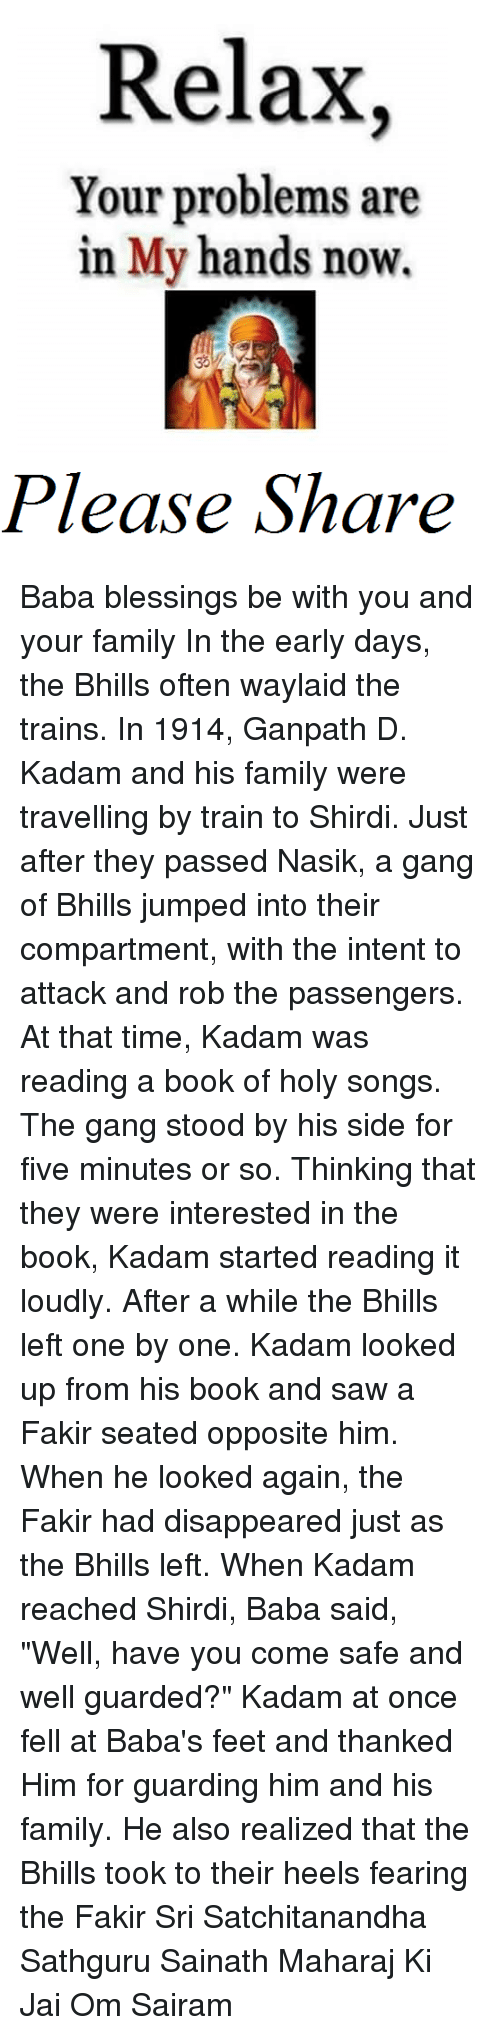 "gangs: Relax,  Your problems are  in My hands now.  Please Share Baba blessings be with you and your family  In the early days, the Bhills often waylaid the trains. In 1914, Ganpath D. Kadam and his family were trav­elling by train to Shirdi. Just after they passed Nasik, a gang of Bhills jumped into their compartment, with the intent to attack and rob the passengers. At that time, Kadam was reading a book of holy songs. The gang stood by his side for five minutes or so. Thinking that they were interested in the book, Kadam started read­ing it loudly. After a while the Bhills left one by one. Kadam looked up from his book and saw a Fakir seated opposite him. When he looked again, the Fakir had disappeared just as the Bhills left. When Kadam reached Shirdi, Baba said, ""Well, have you come safe and well guarded?"" Kadam at once fell at Baba's feet and thanked Him for guarding him and his family. He also realized that the Bhills took to their heels fearing the Fakir  Sri Satchitanandha Sathguru Sainath Maharaj Ki Jai Om Sairam"